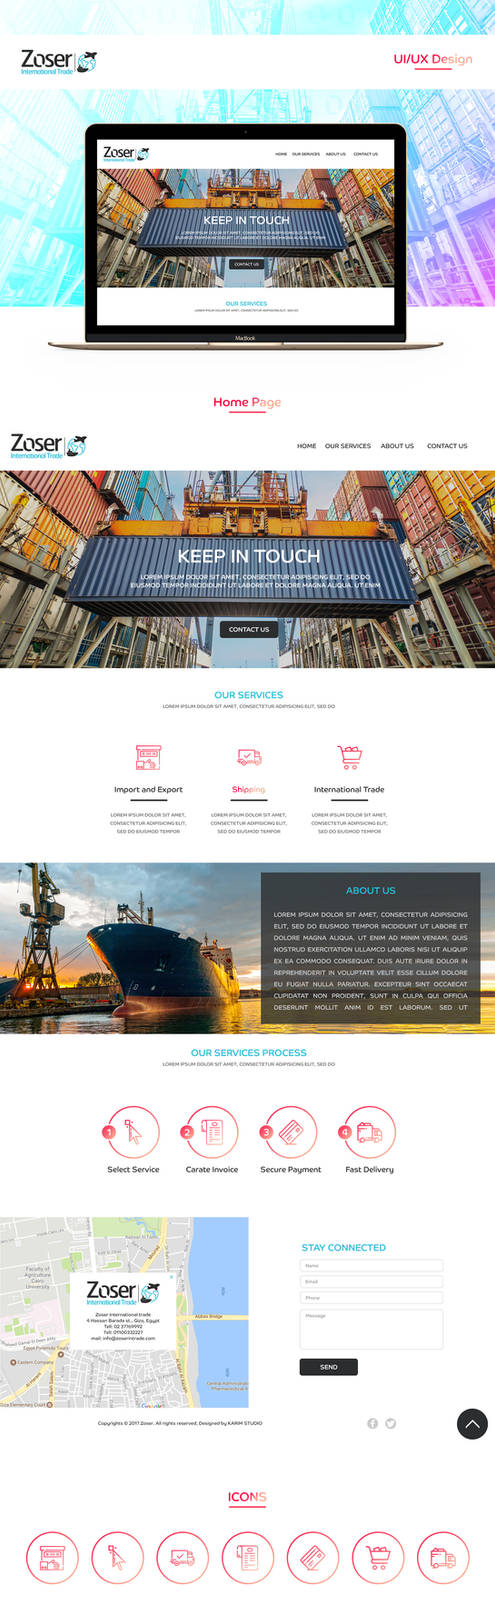 Zoser international trade | UI/UX Design by KarimStudio